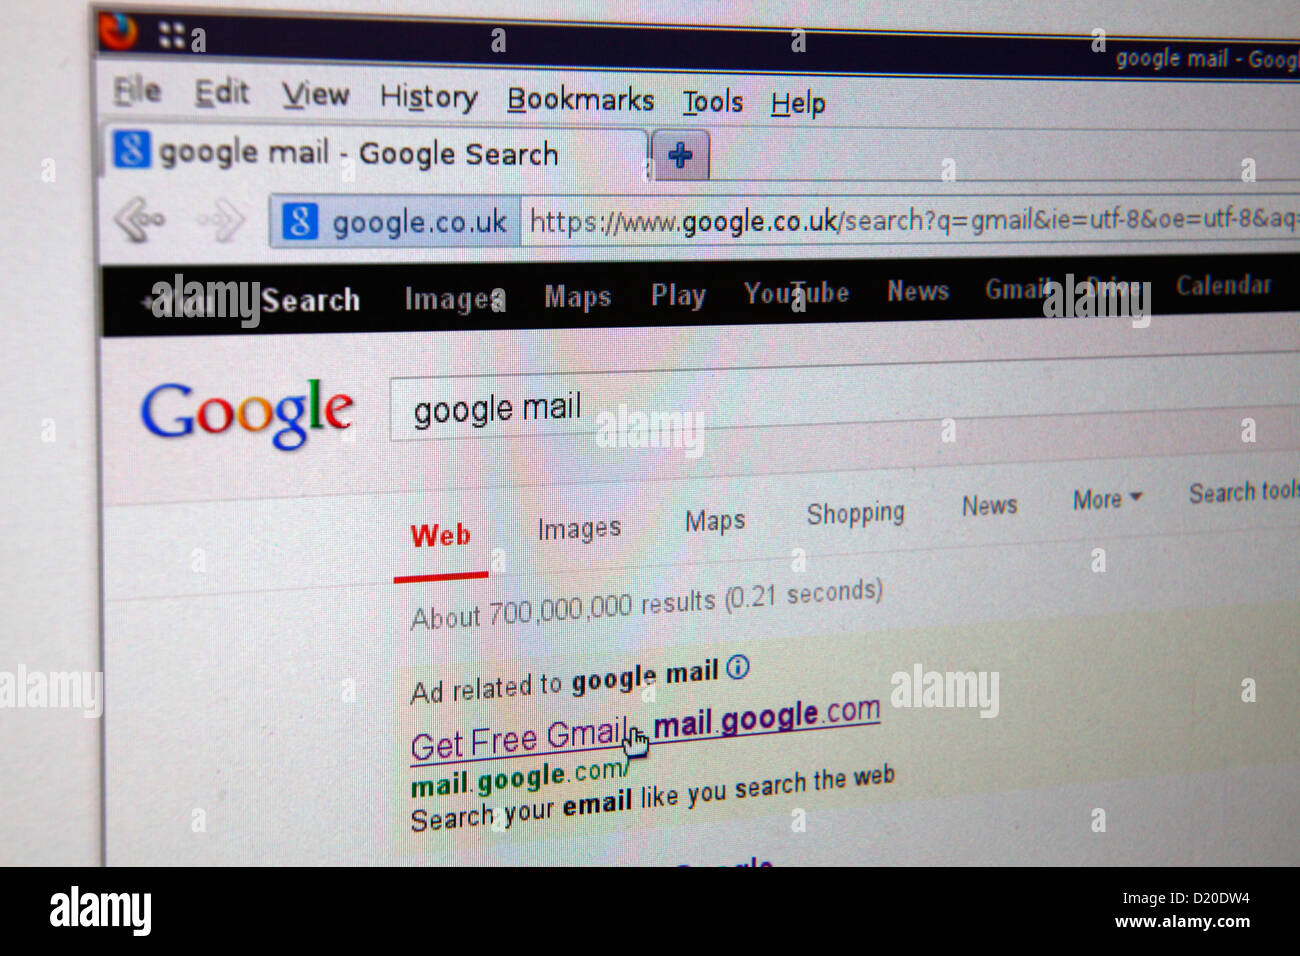 Google search engine with search for gmail googlemail and cursor on link - Stock Image